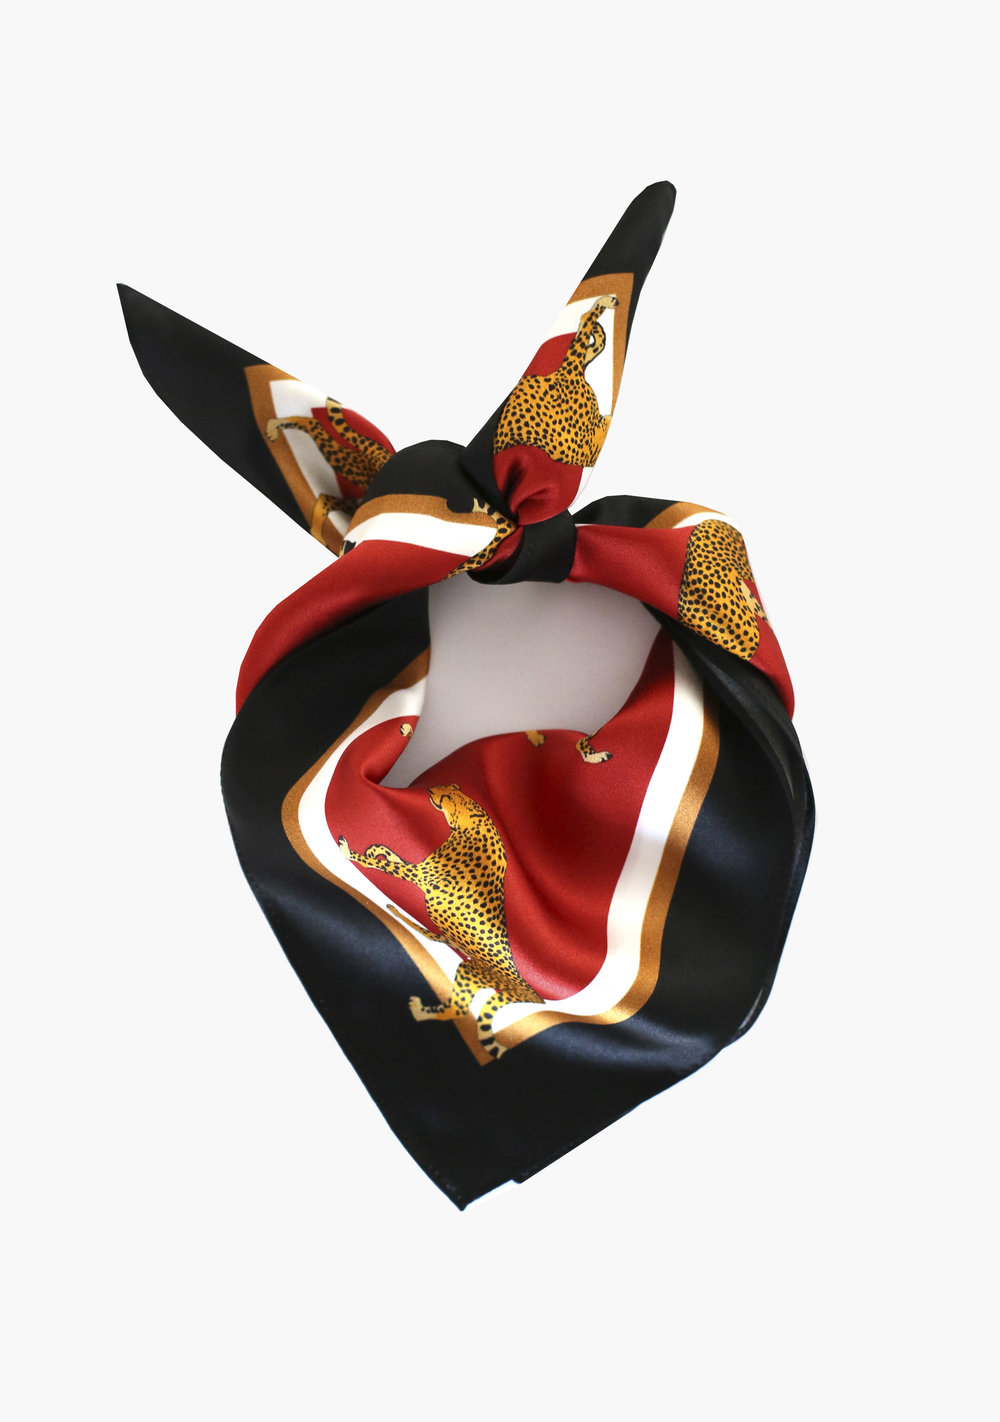 66-The-Label-silk-scarf-hunter-medium-red-1.jpg